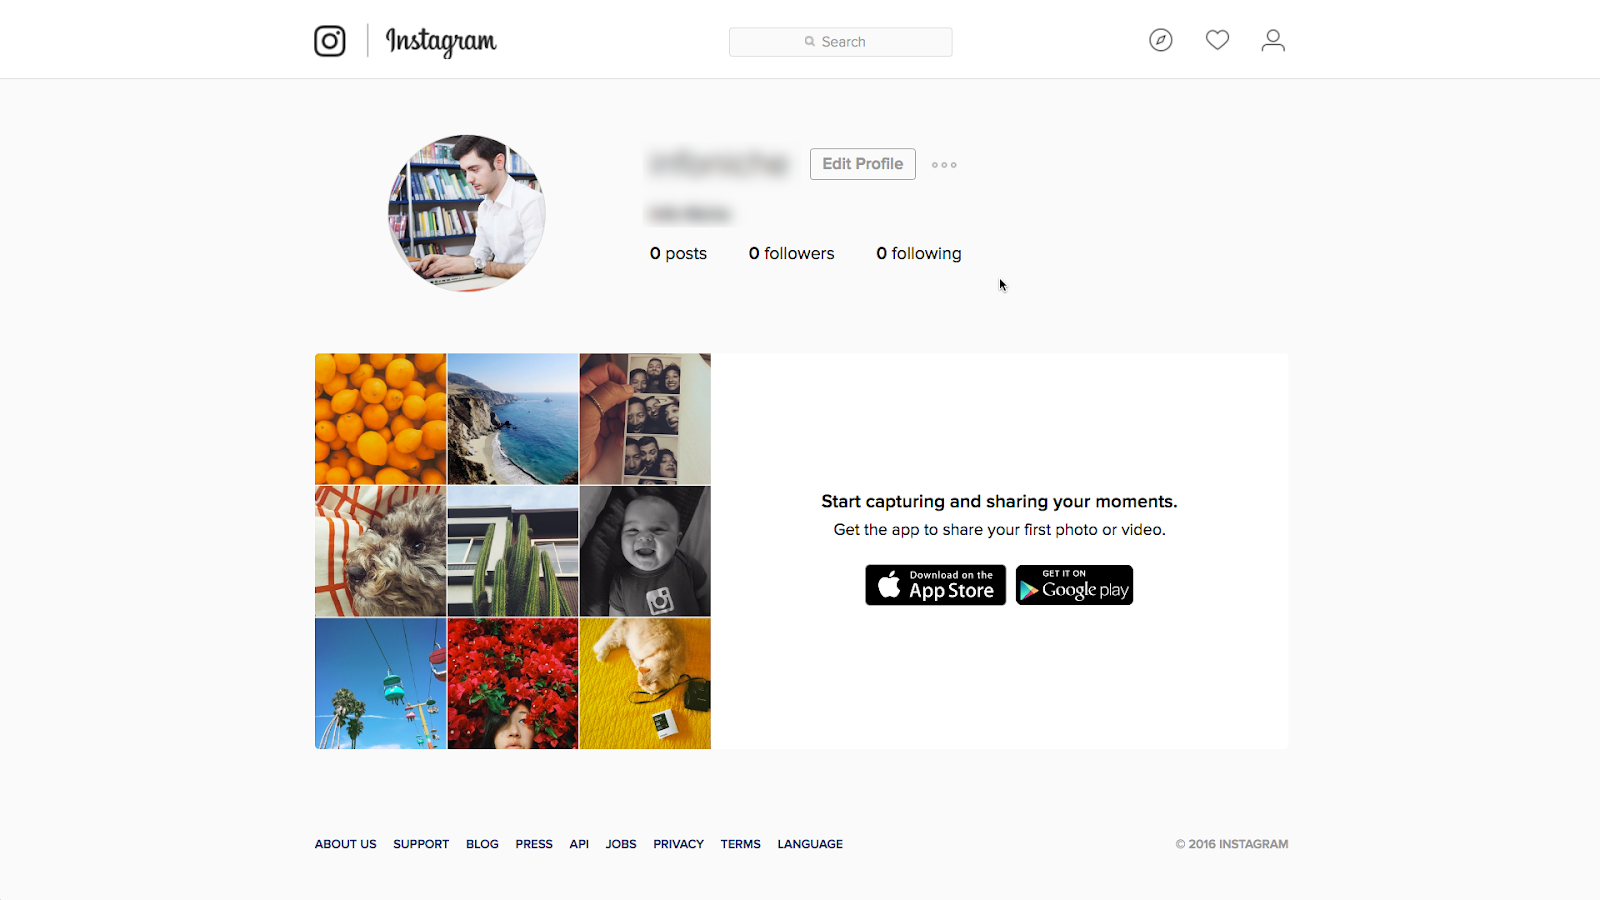 Instagram Tutorial - Share your moments